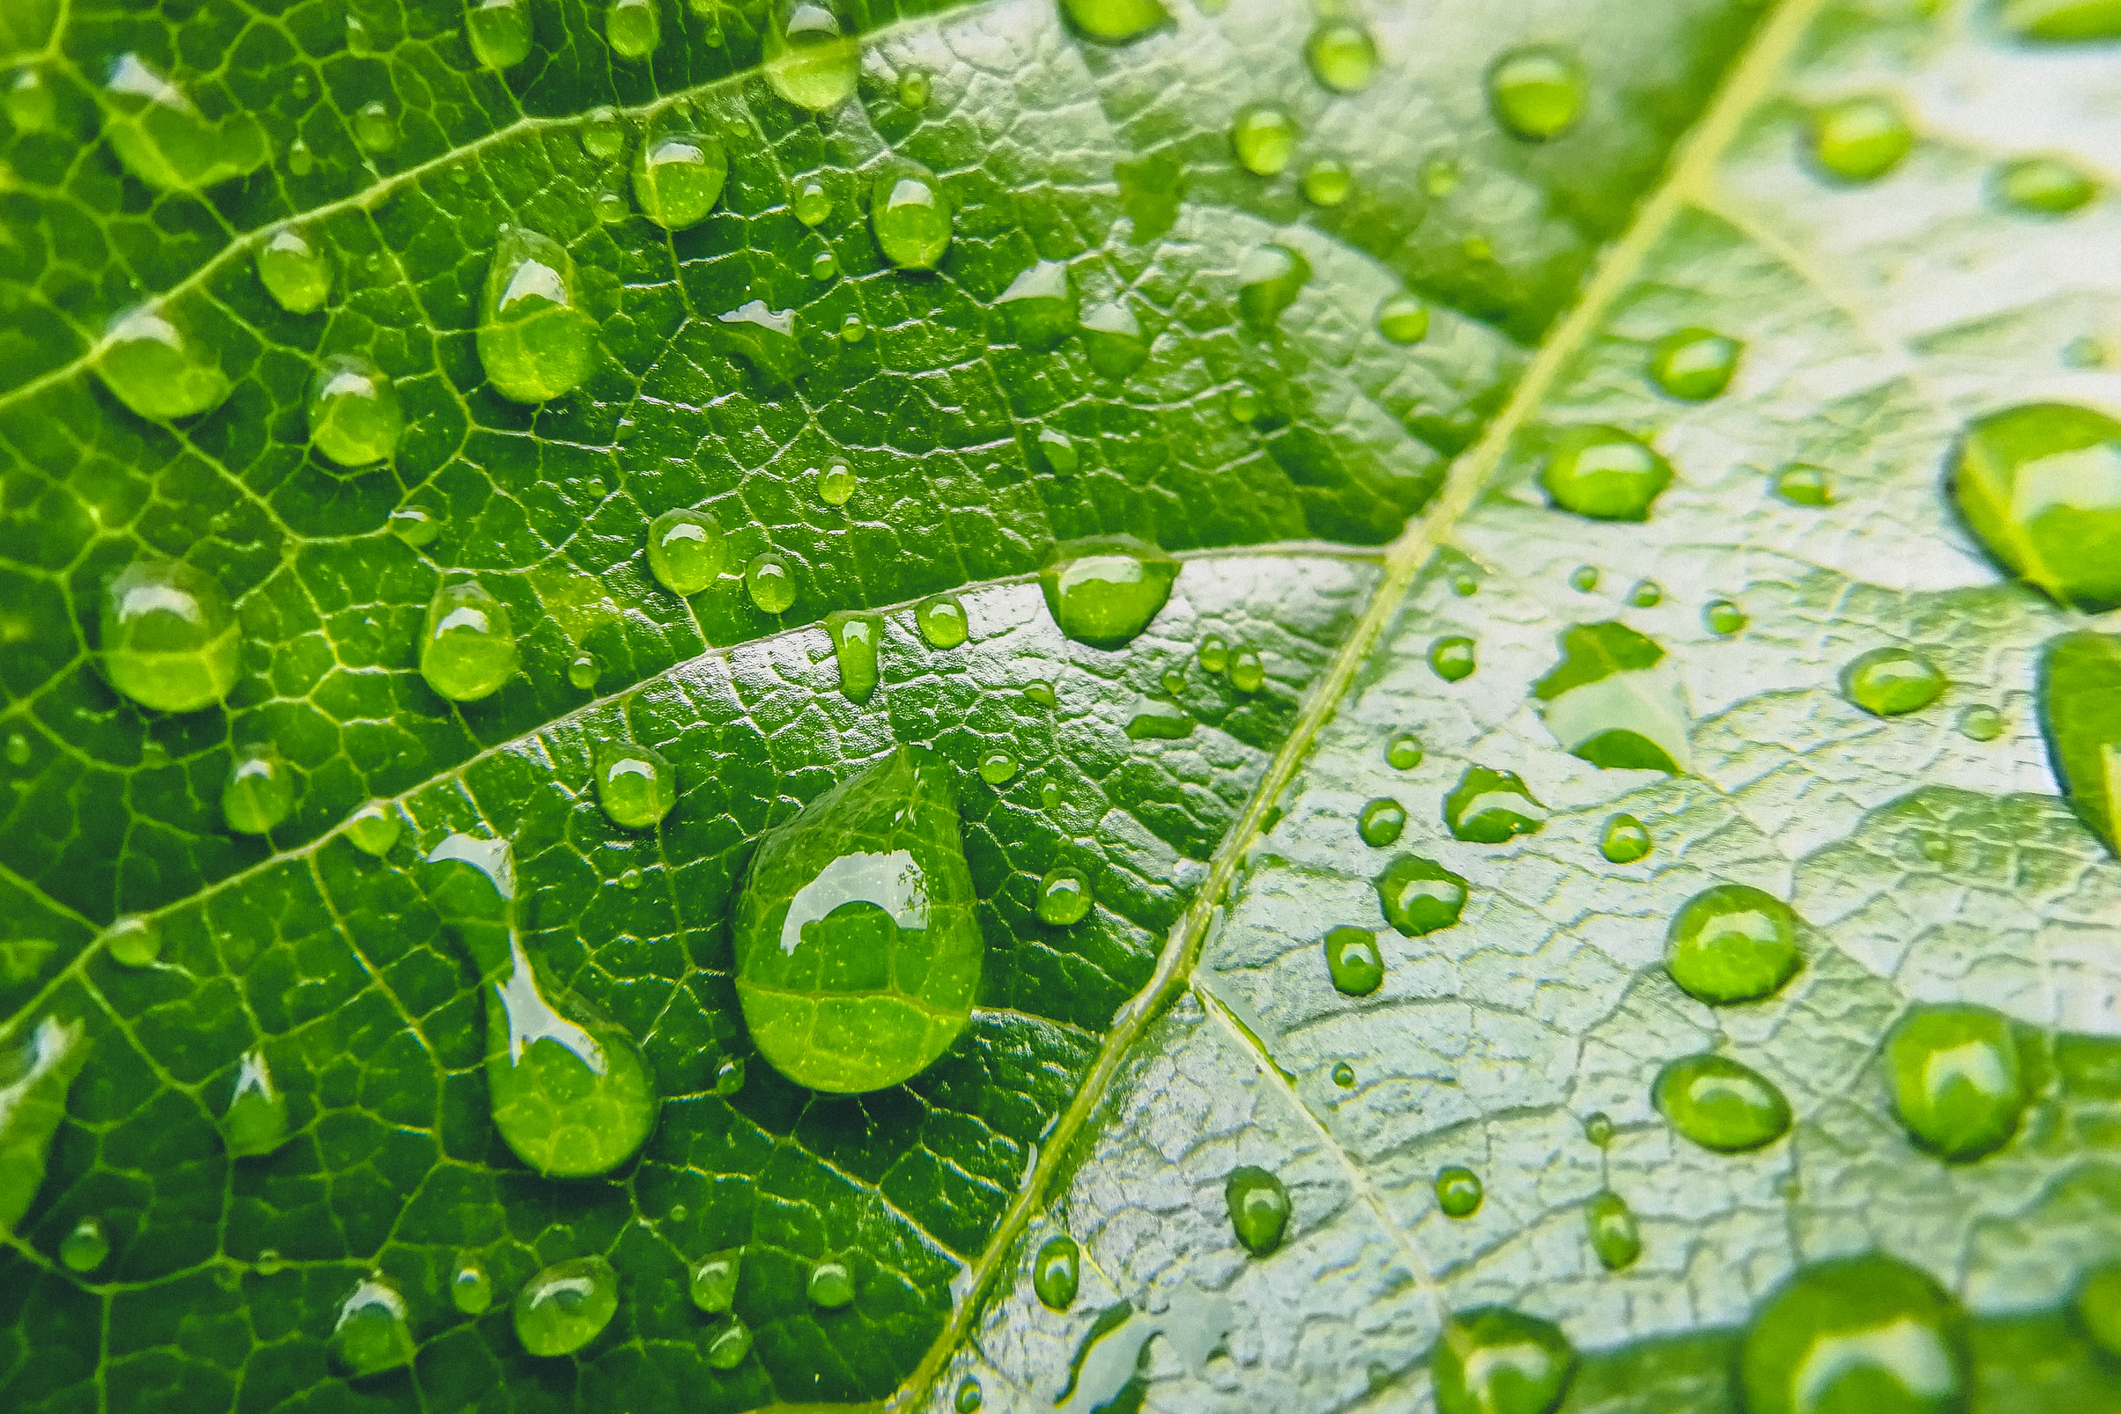 Close up photo of water drops on a green leaf